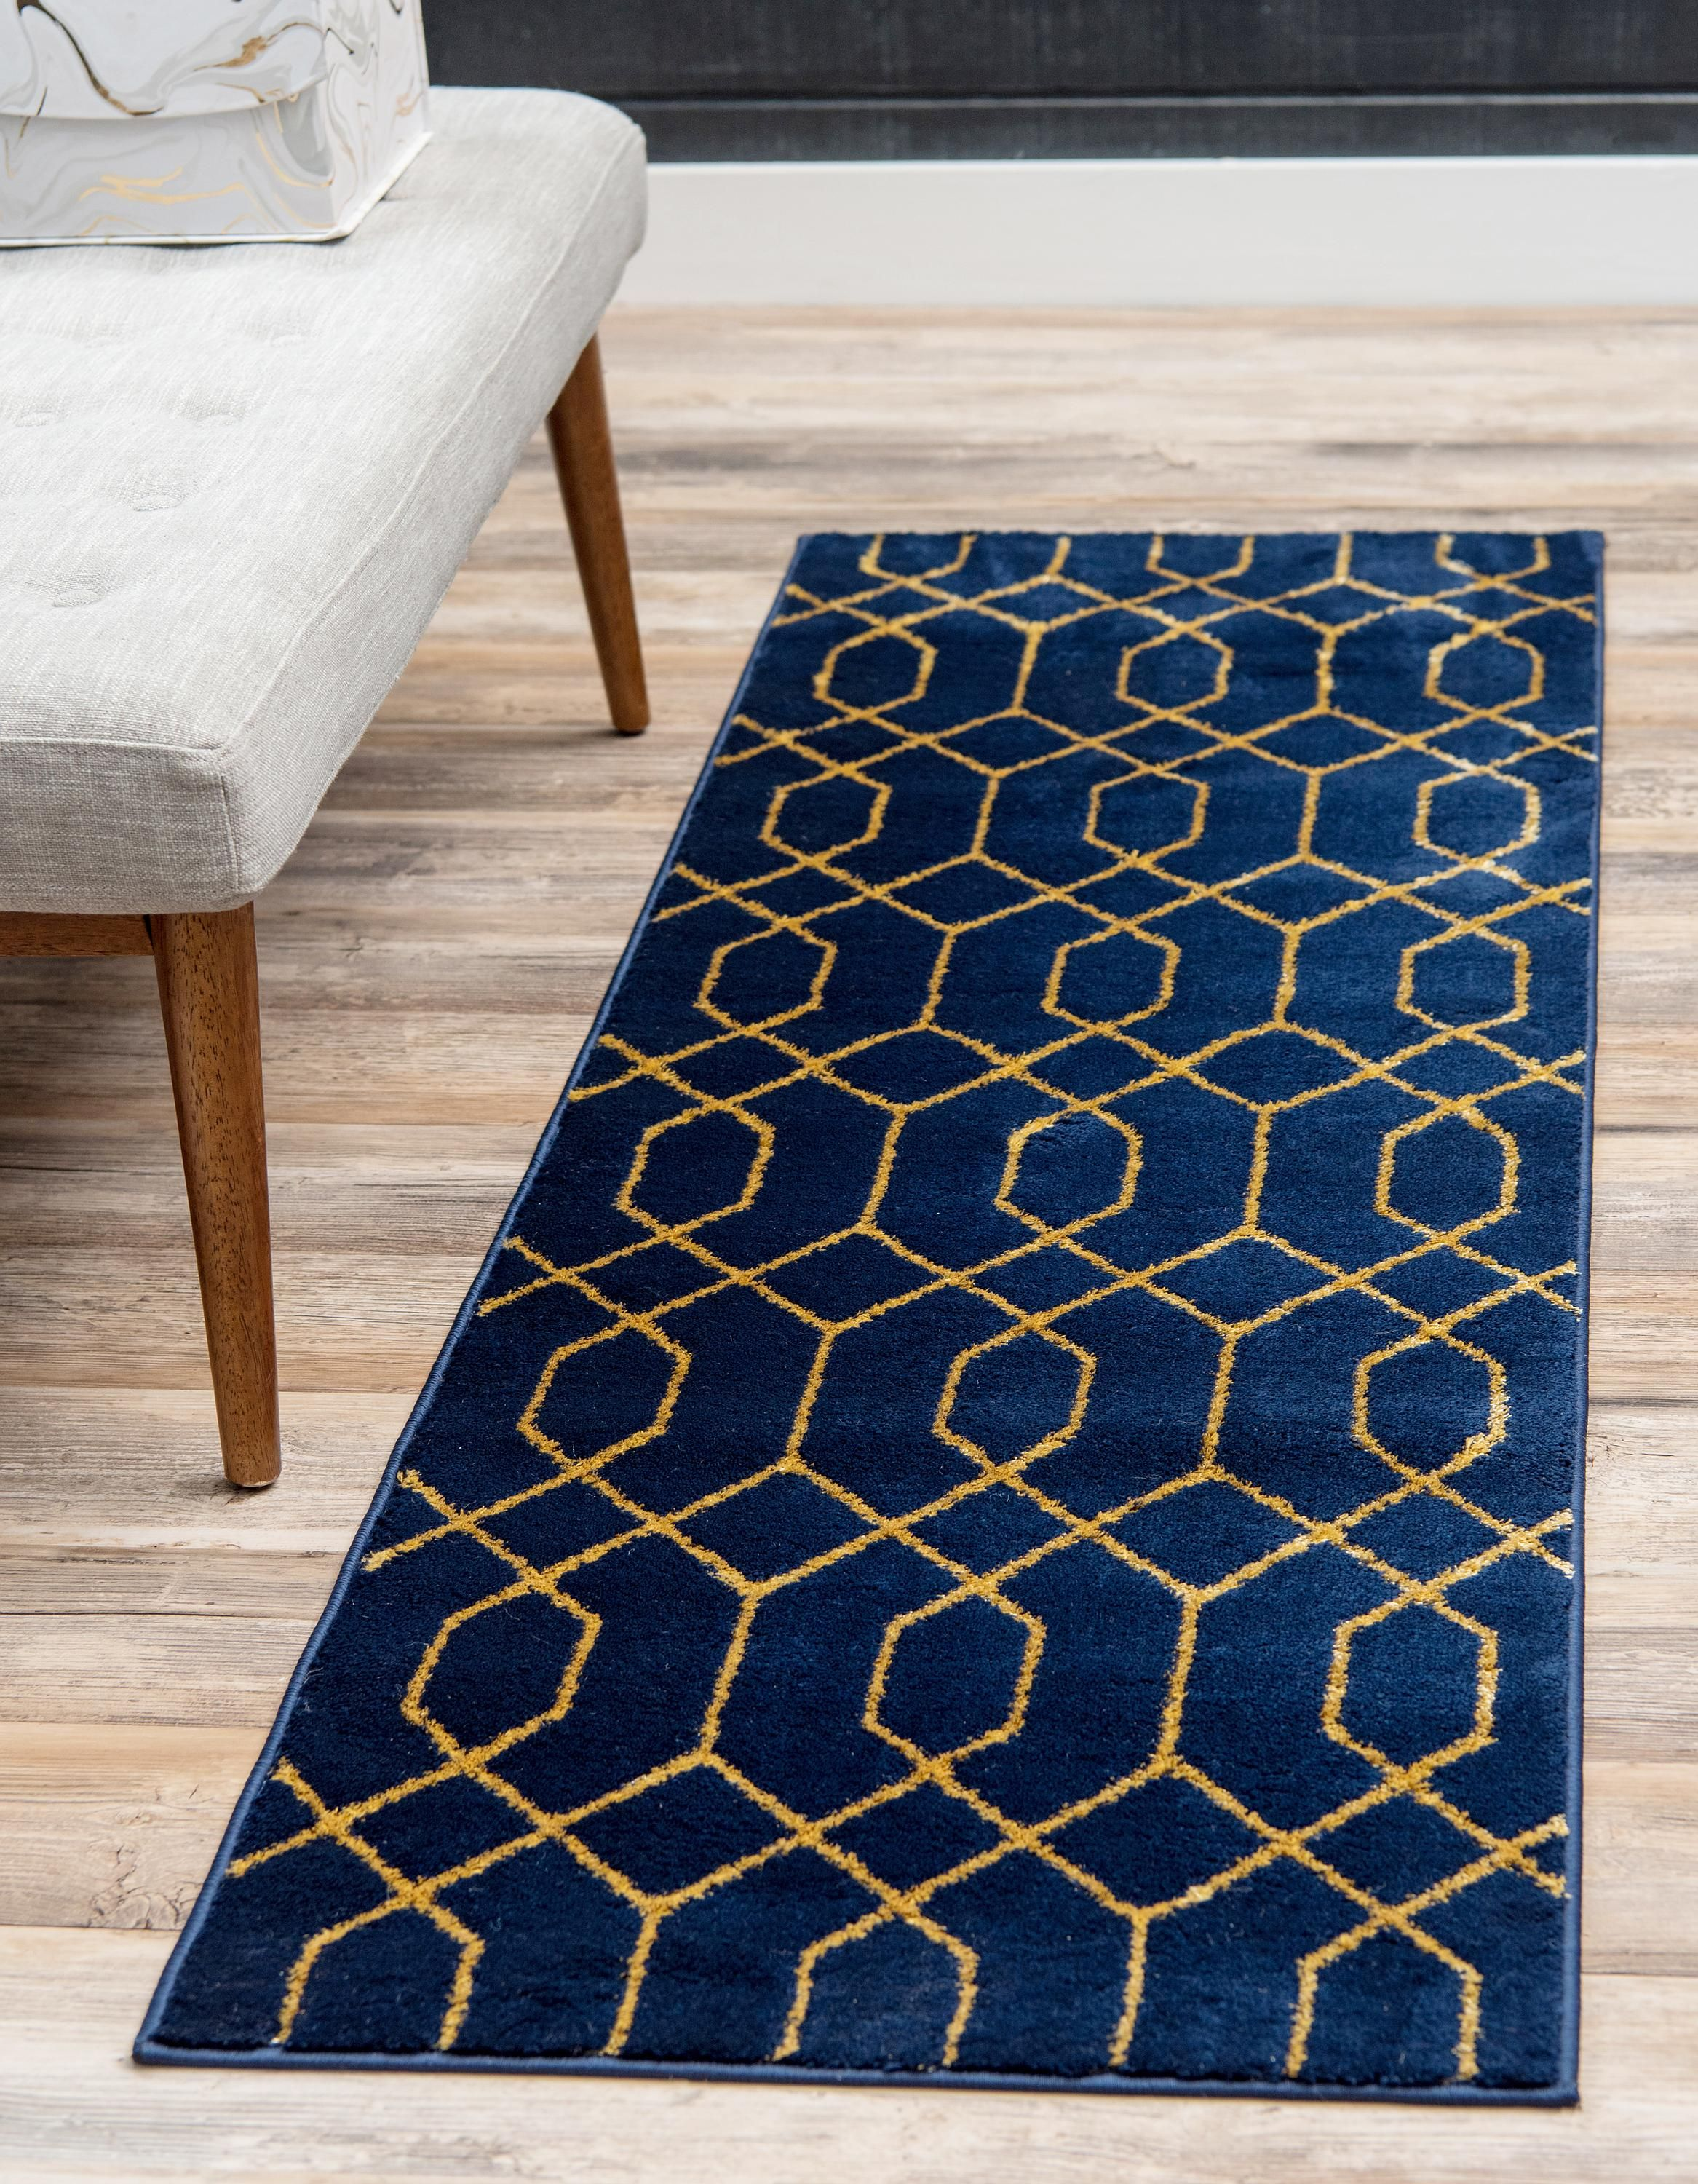 Navy Blue Gold 2 X 6 Marilyn Monroe Glam Trellis Runner Rug Area Rugs Erugs